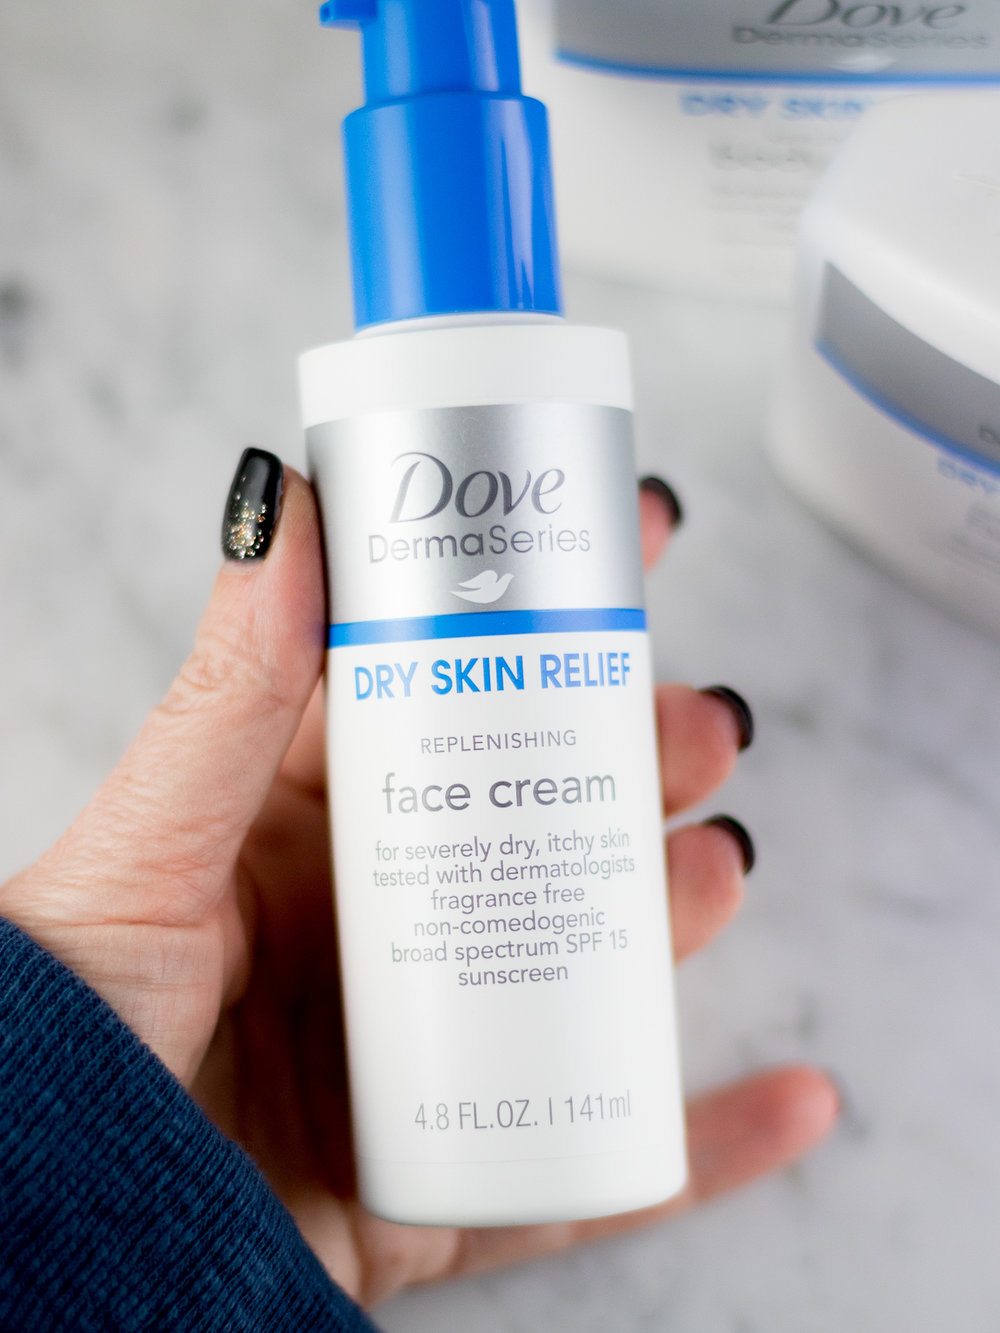 Dove DermaSeries Replenishing Face Cream